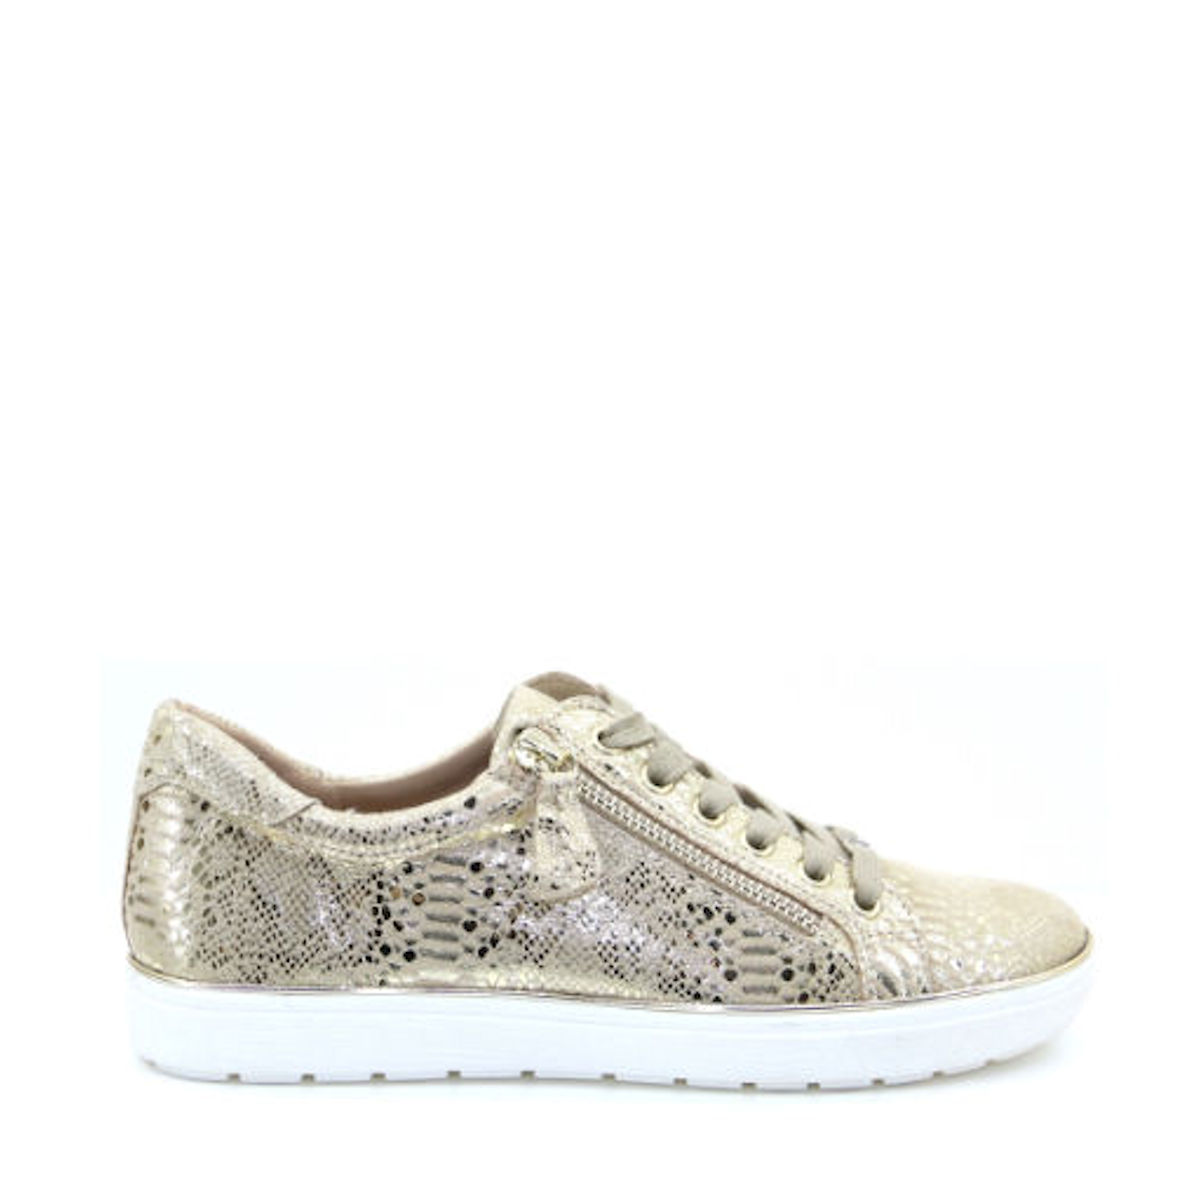 Caprice 23606-24 - Gold Reptile Effect Trainer